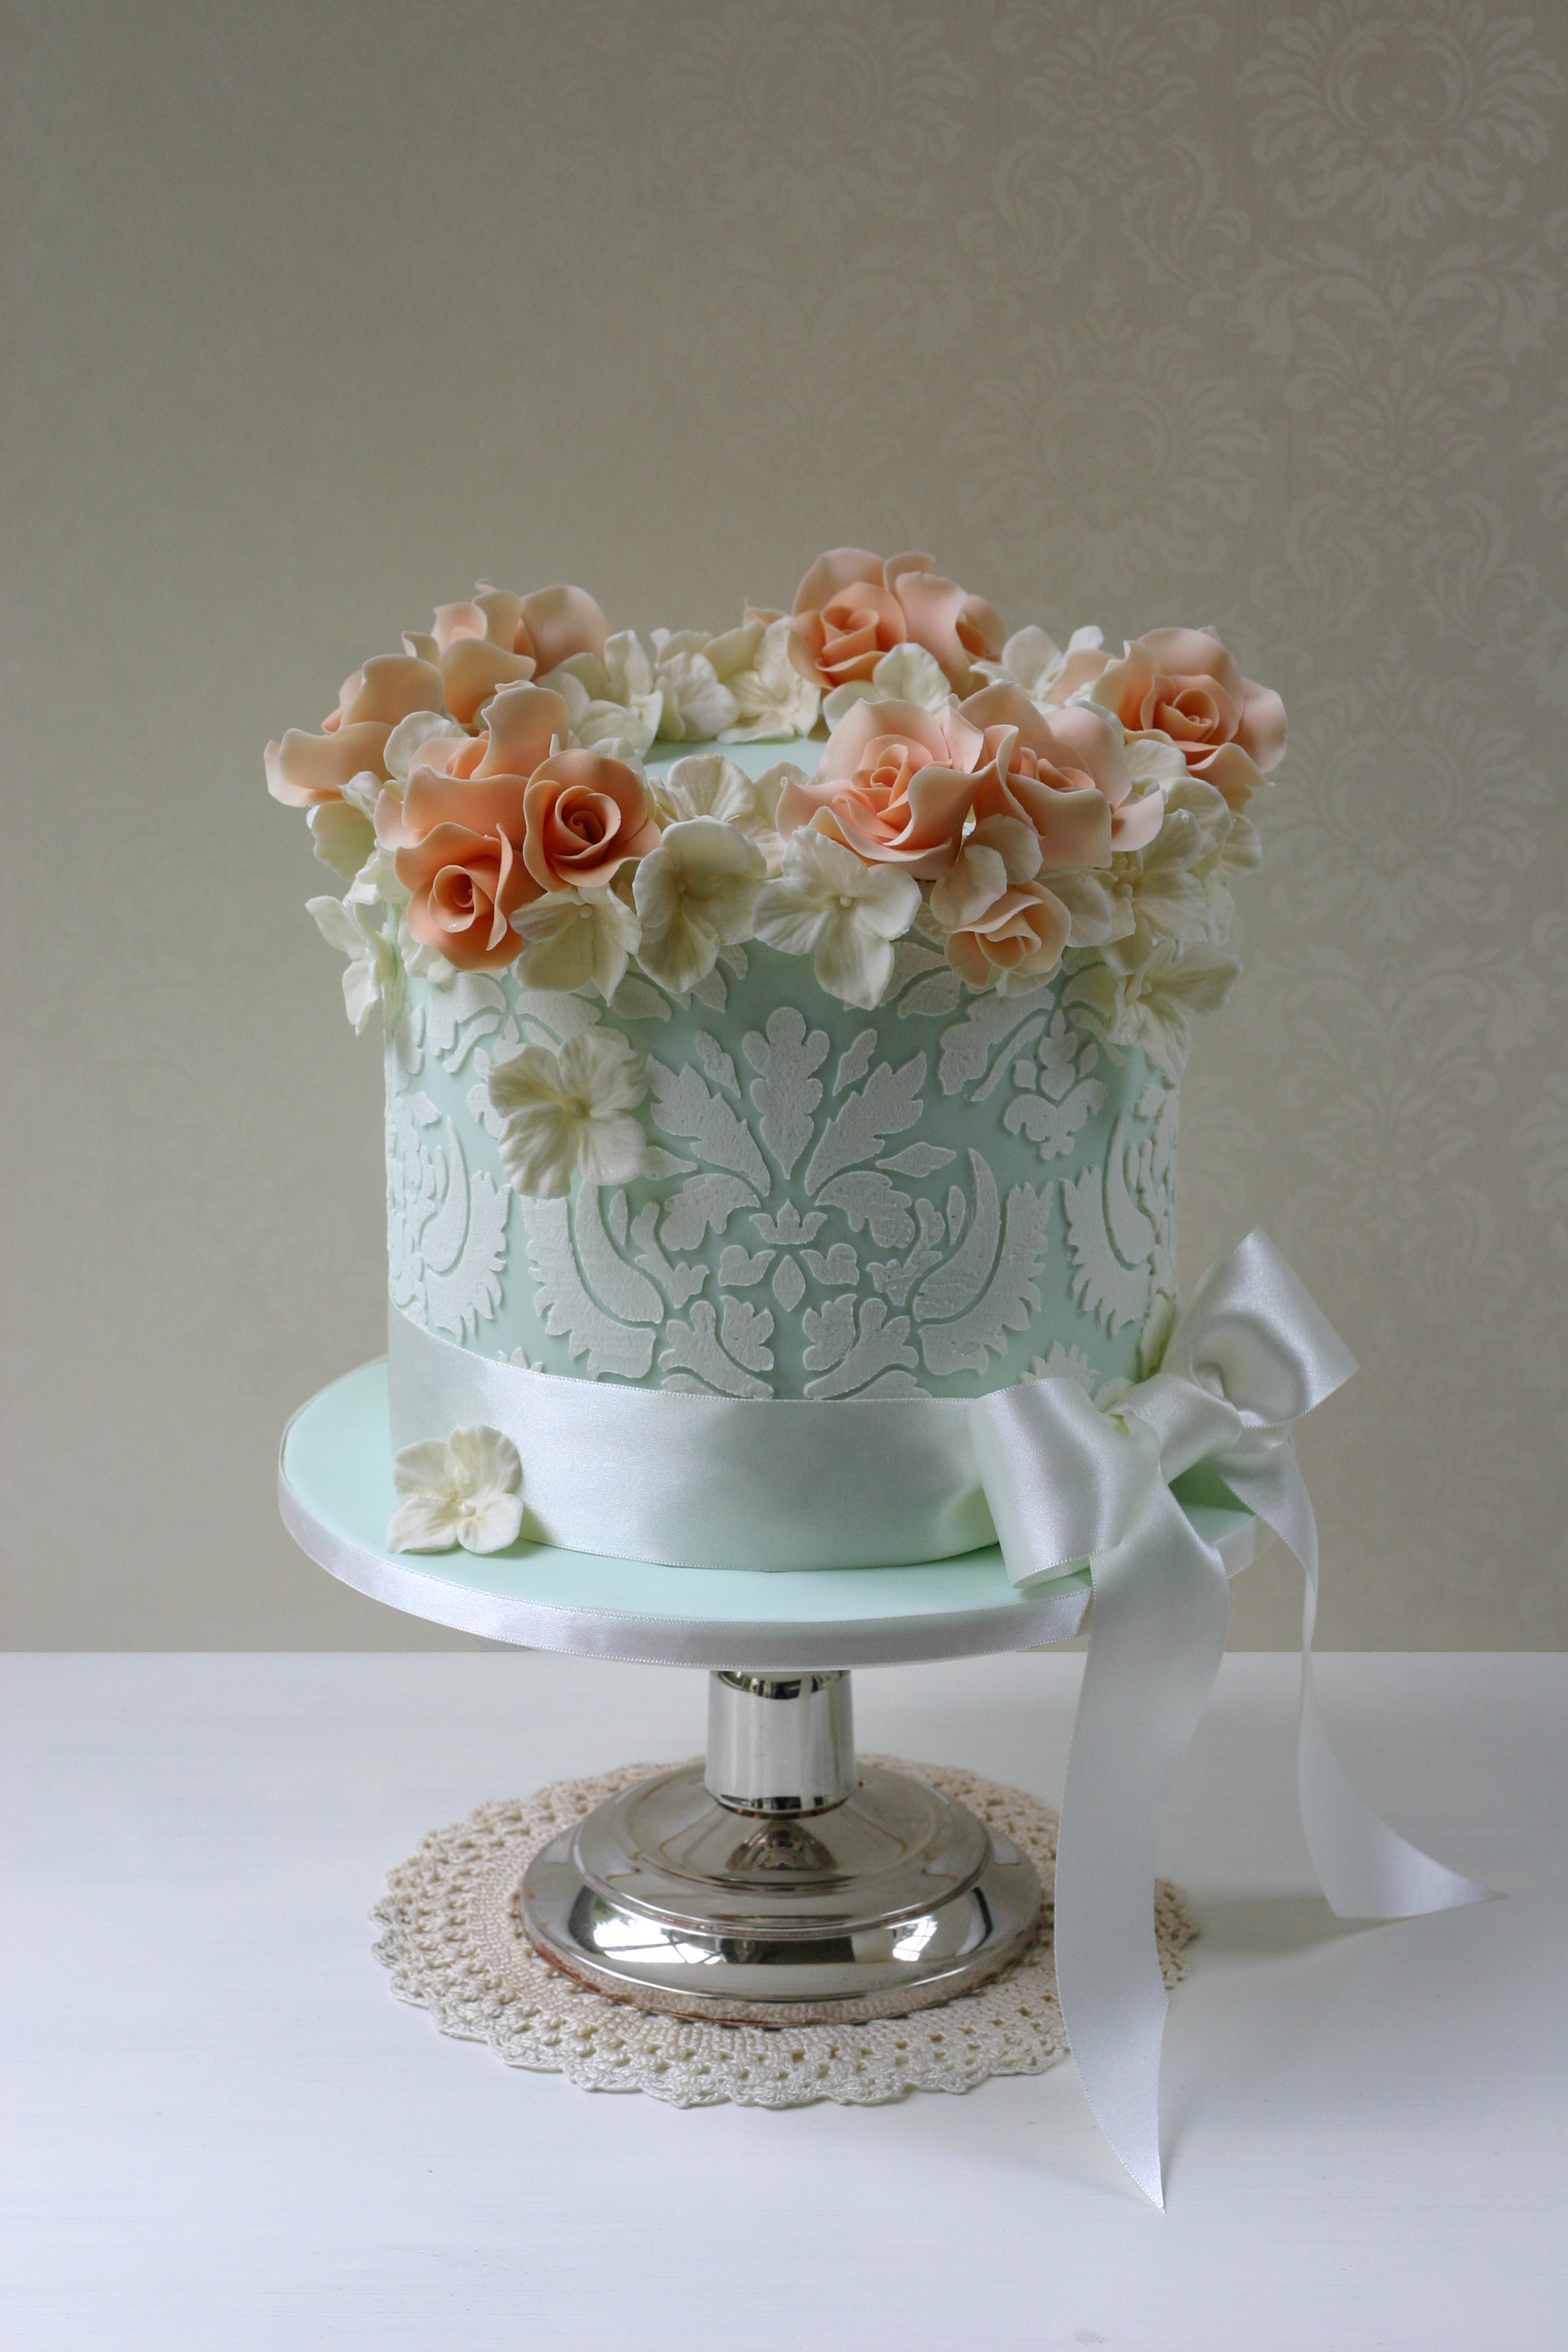 Damask with roses